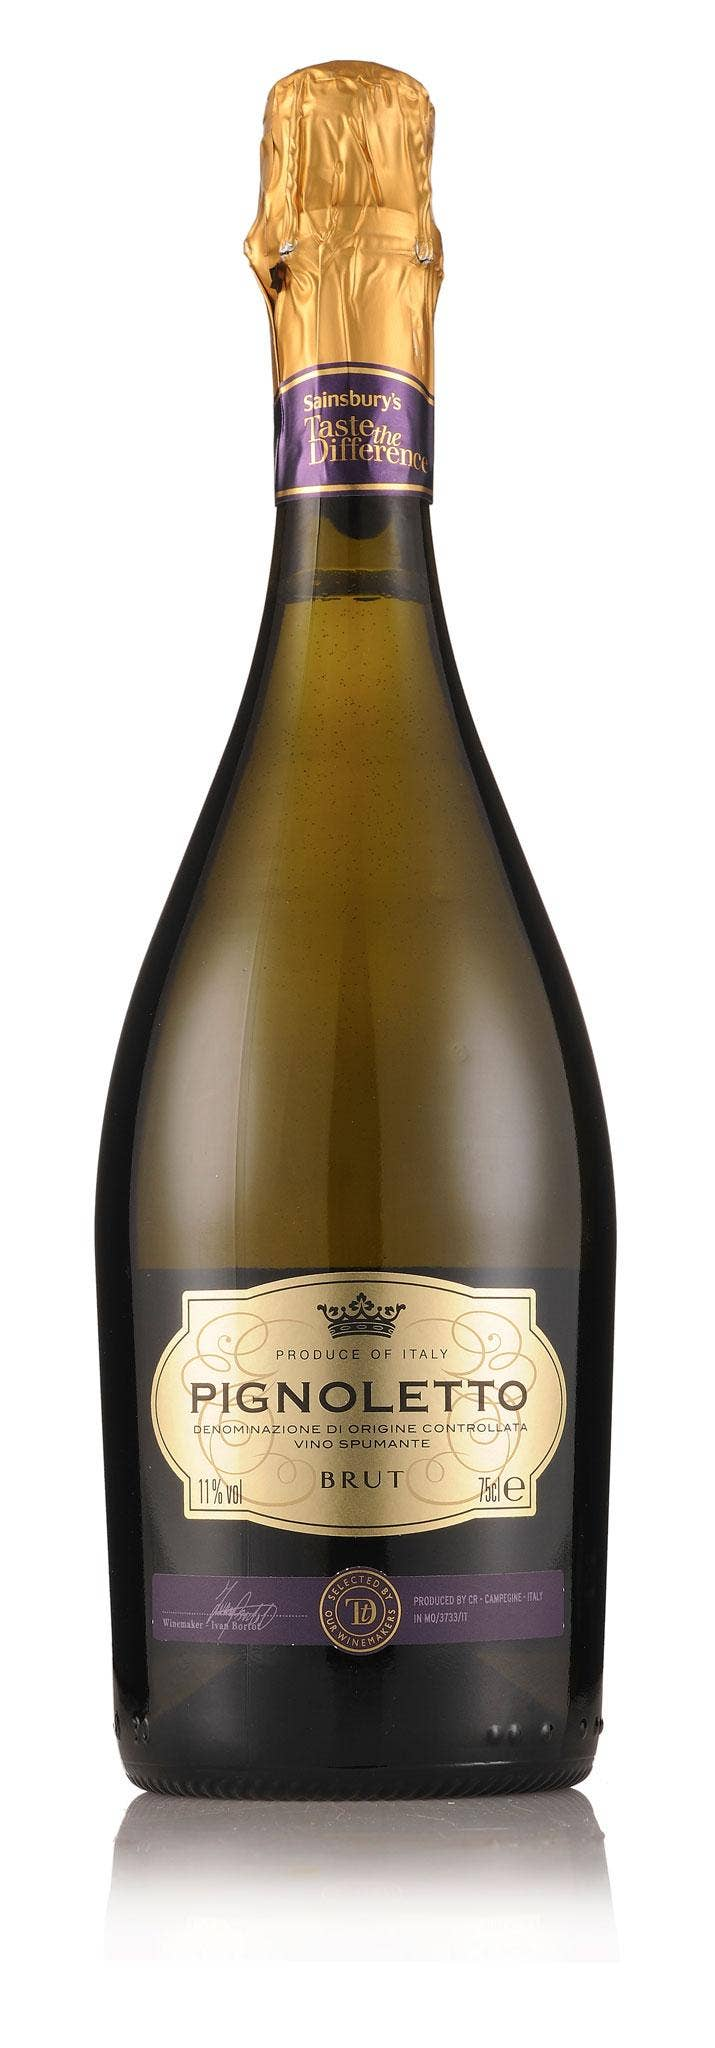 Pignoletto Brut Taste the Difference